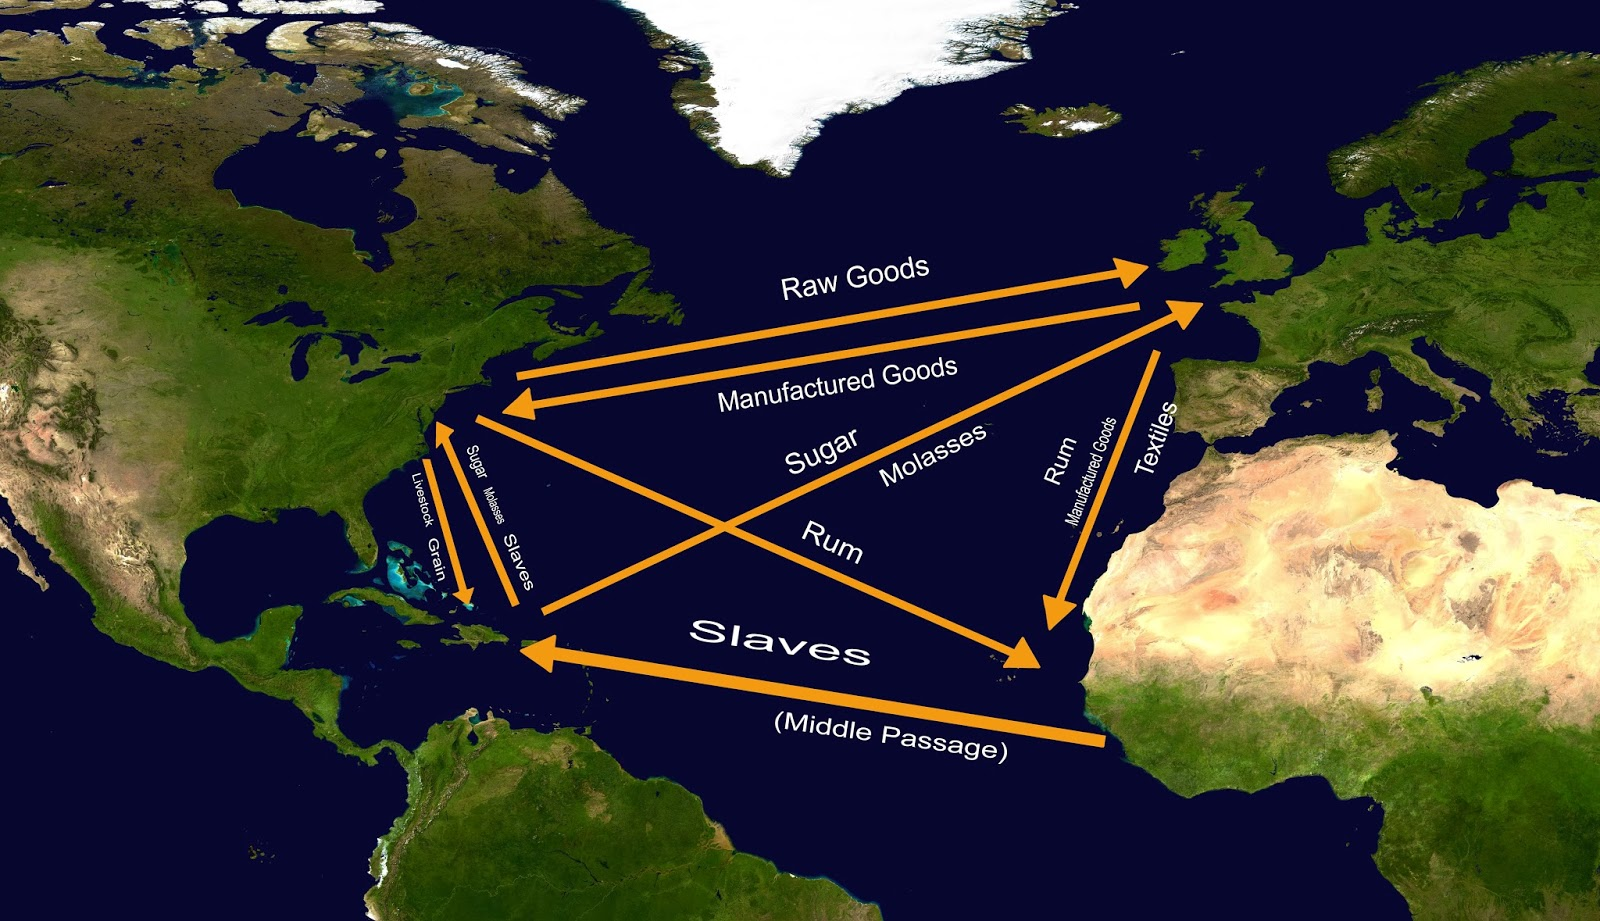 triangular trade middle passage and Atlantic slave trade lesson plan includes student activities for teaching the slave trade in america like the triangular trade & middle passage slave ship travel.